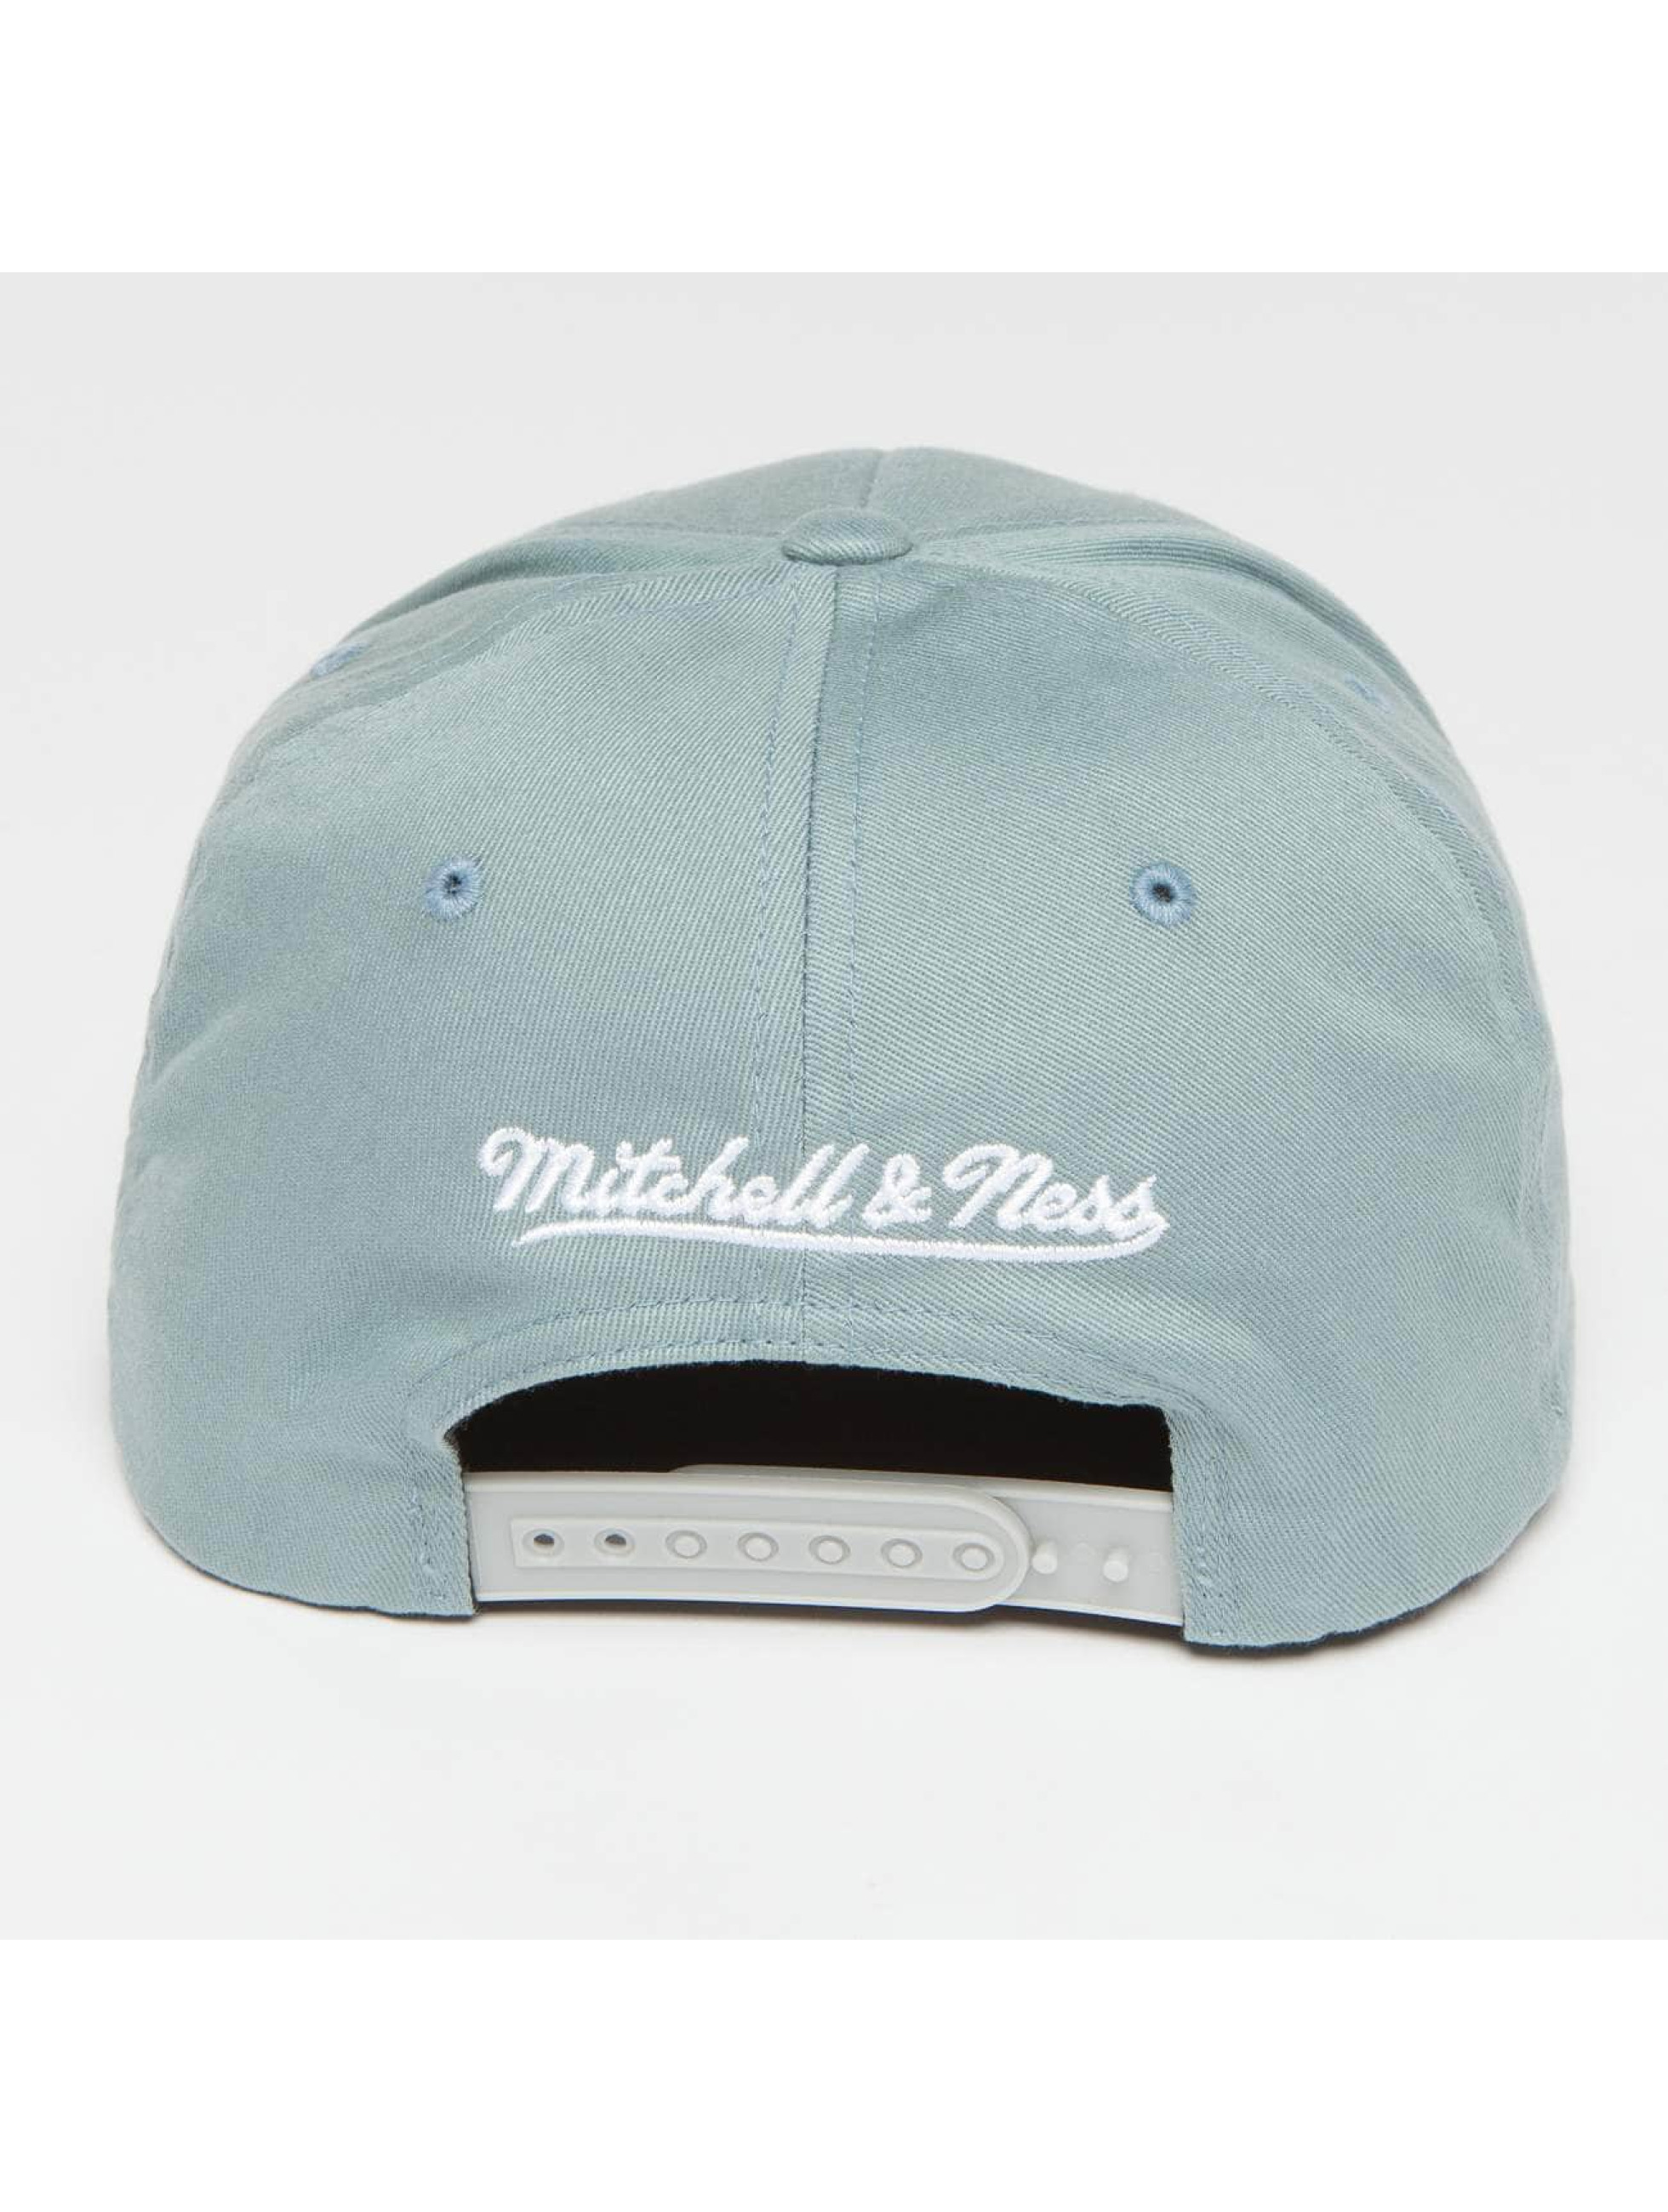 Mitchell & Ness Casquette Snapback & Strapback Own Brand Pinscript High Crown 110 bleu